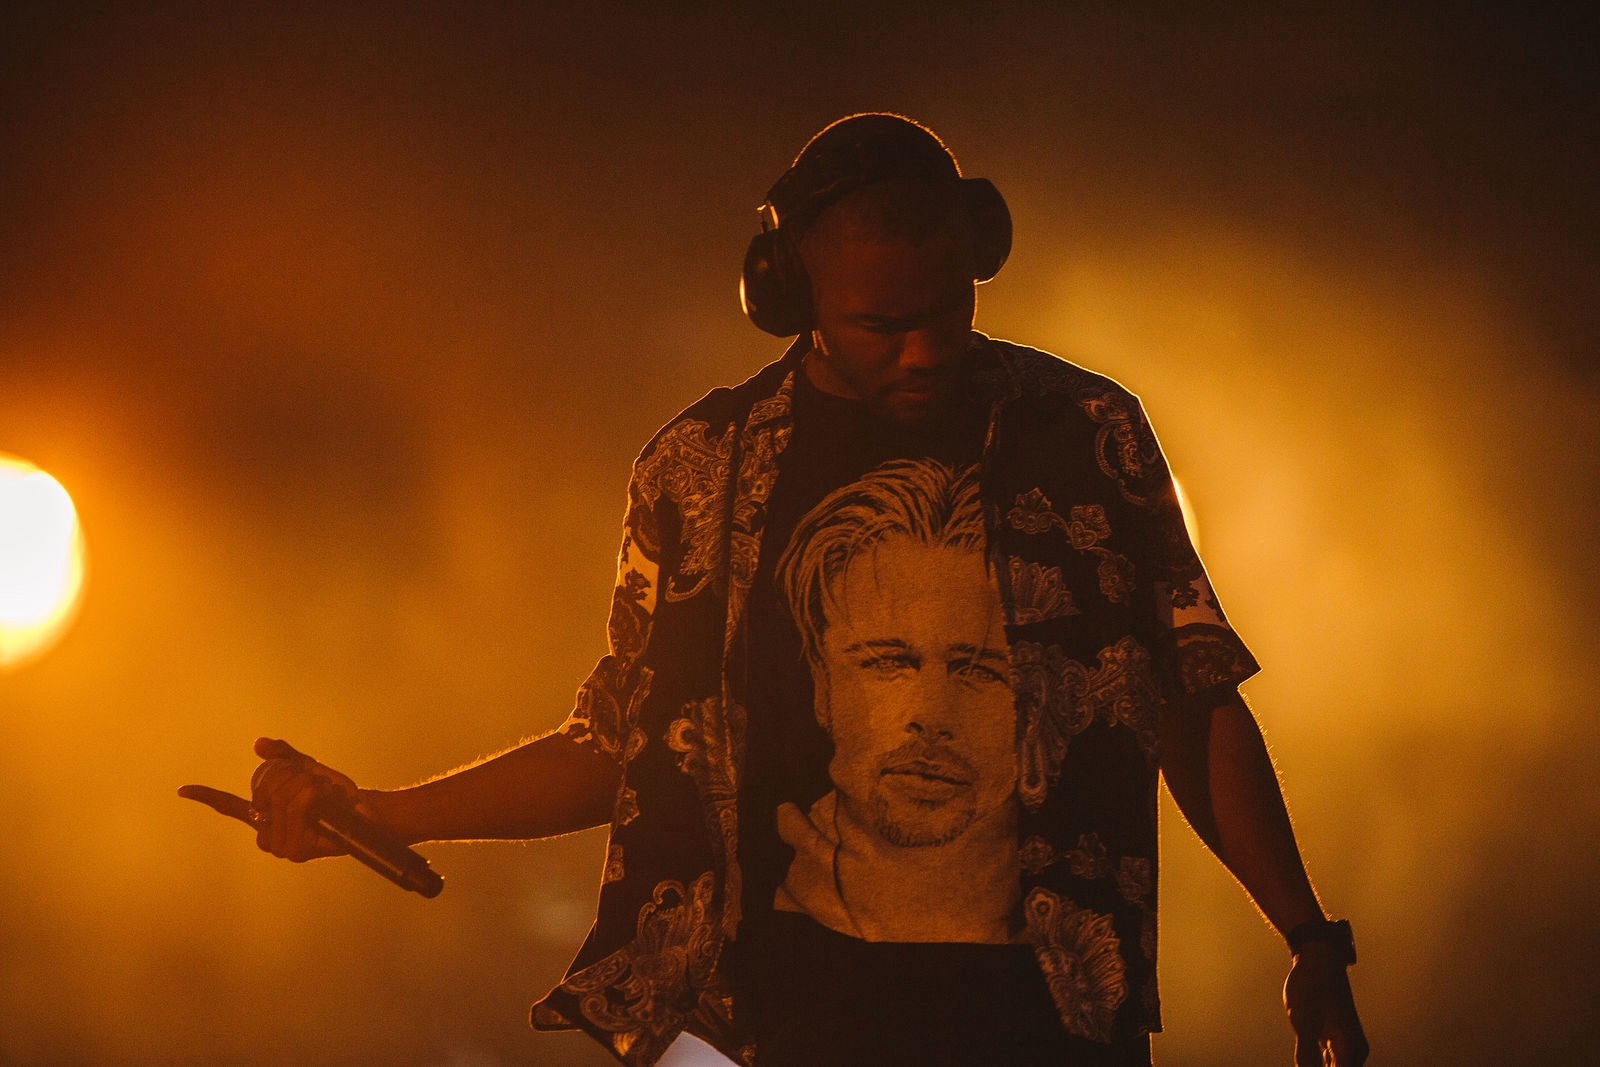 Compartmentalization Through Music with Frank Ocean & Kanye West